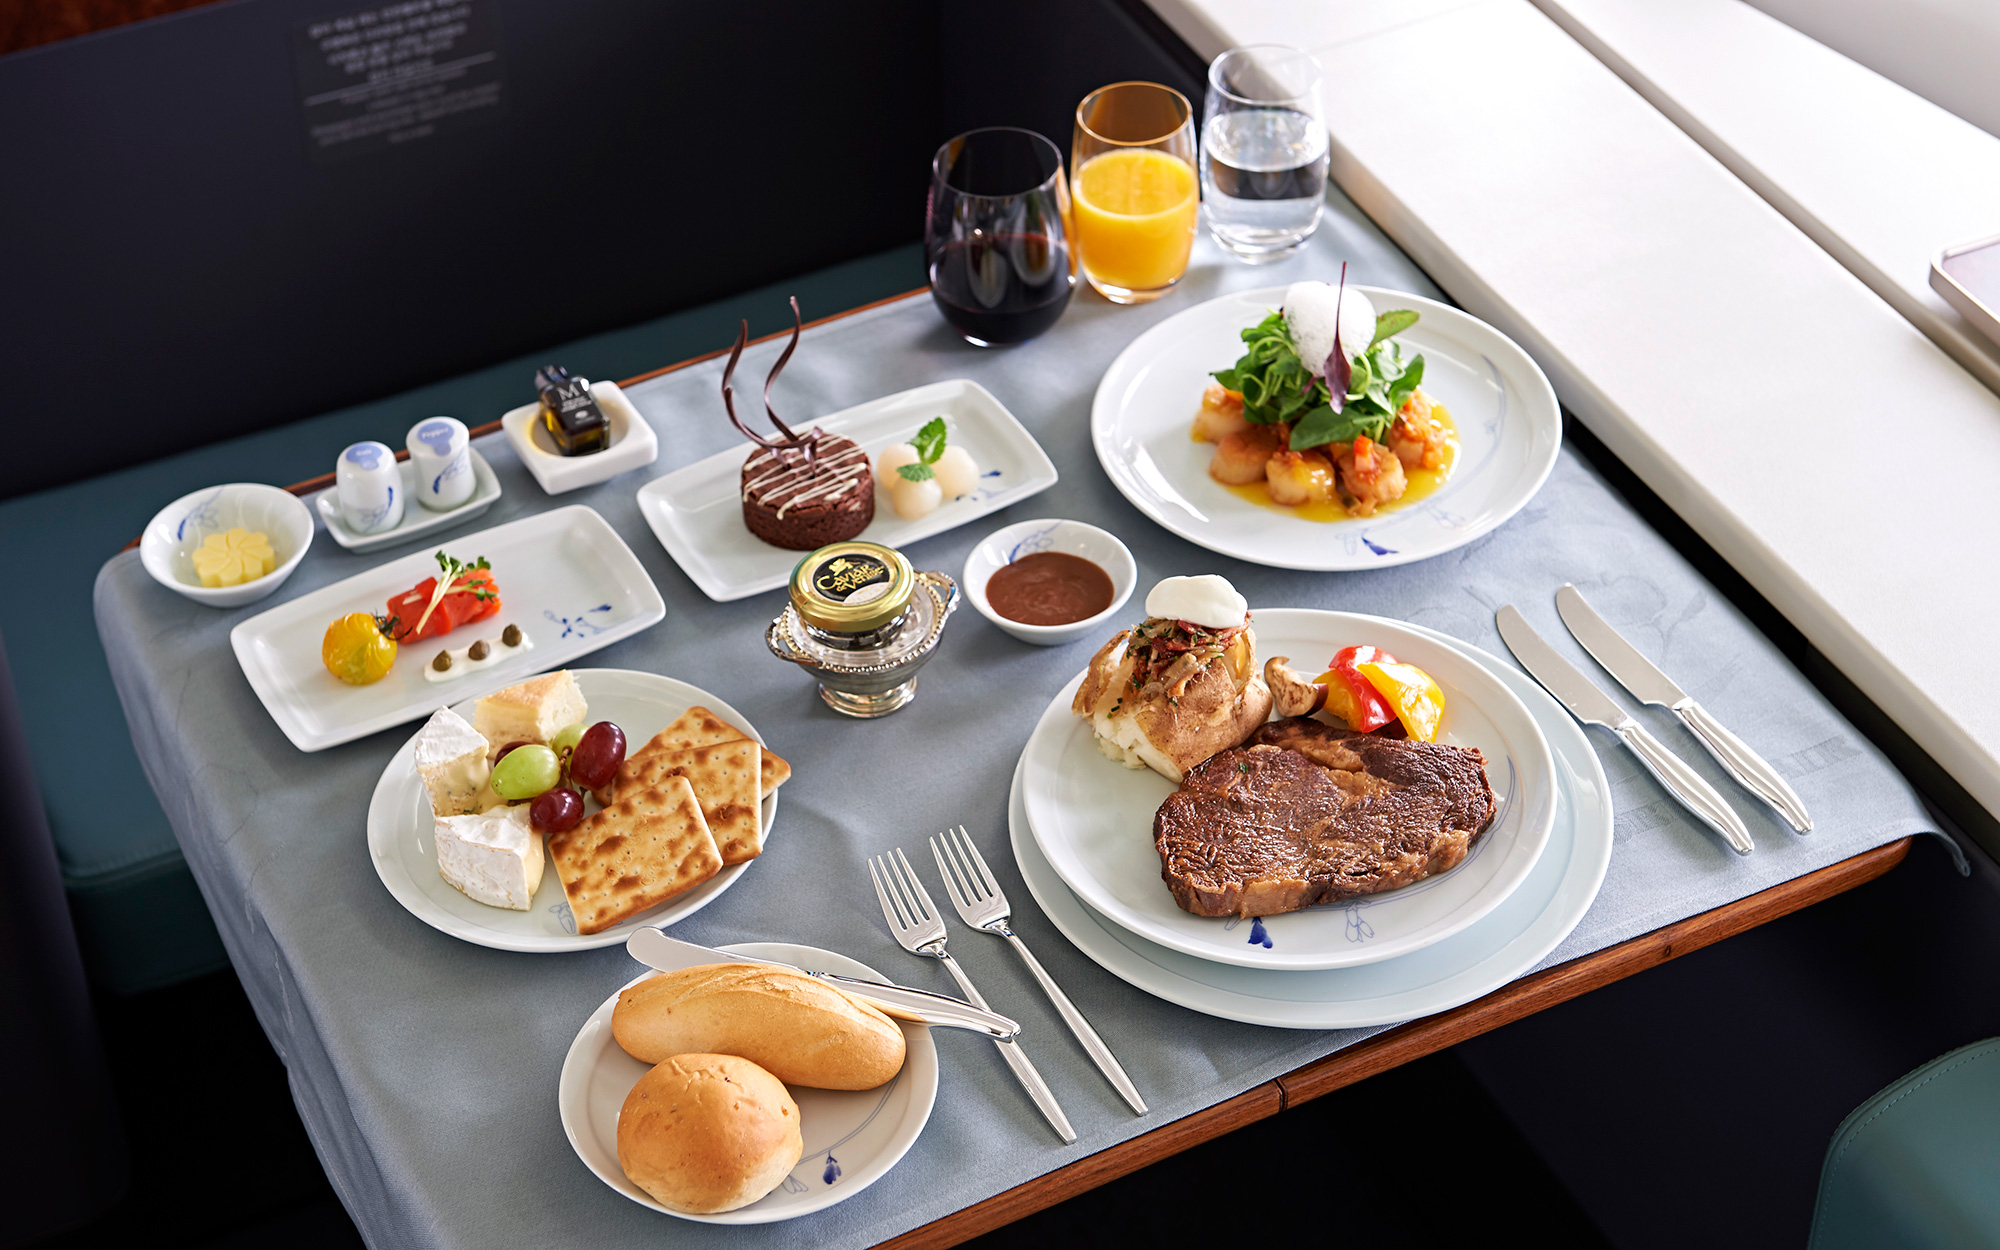 World's Best Airlines for Food: International: Korean Air